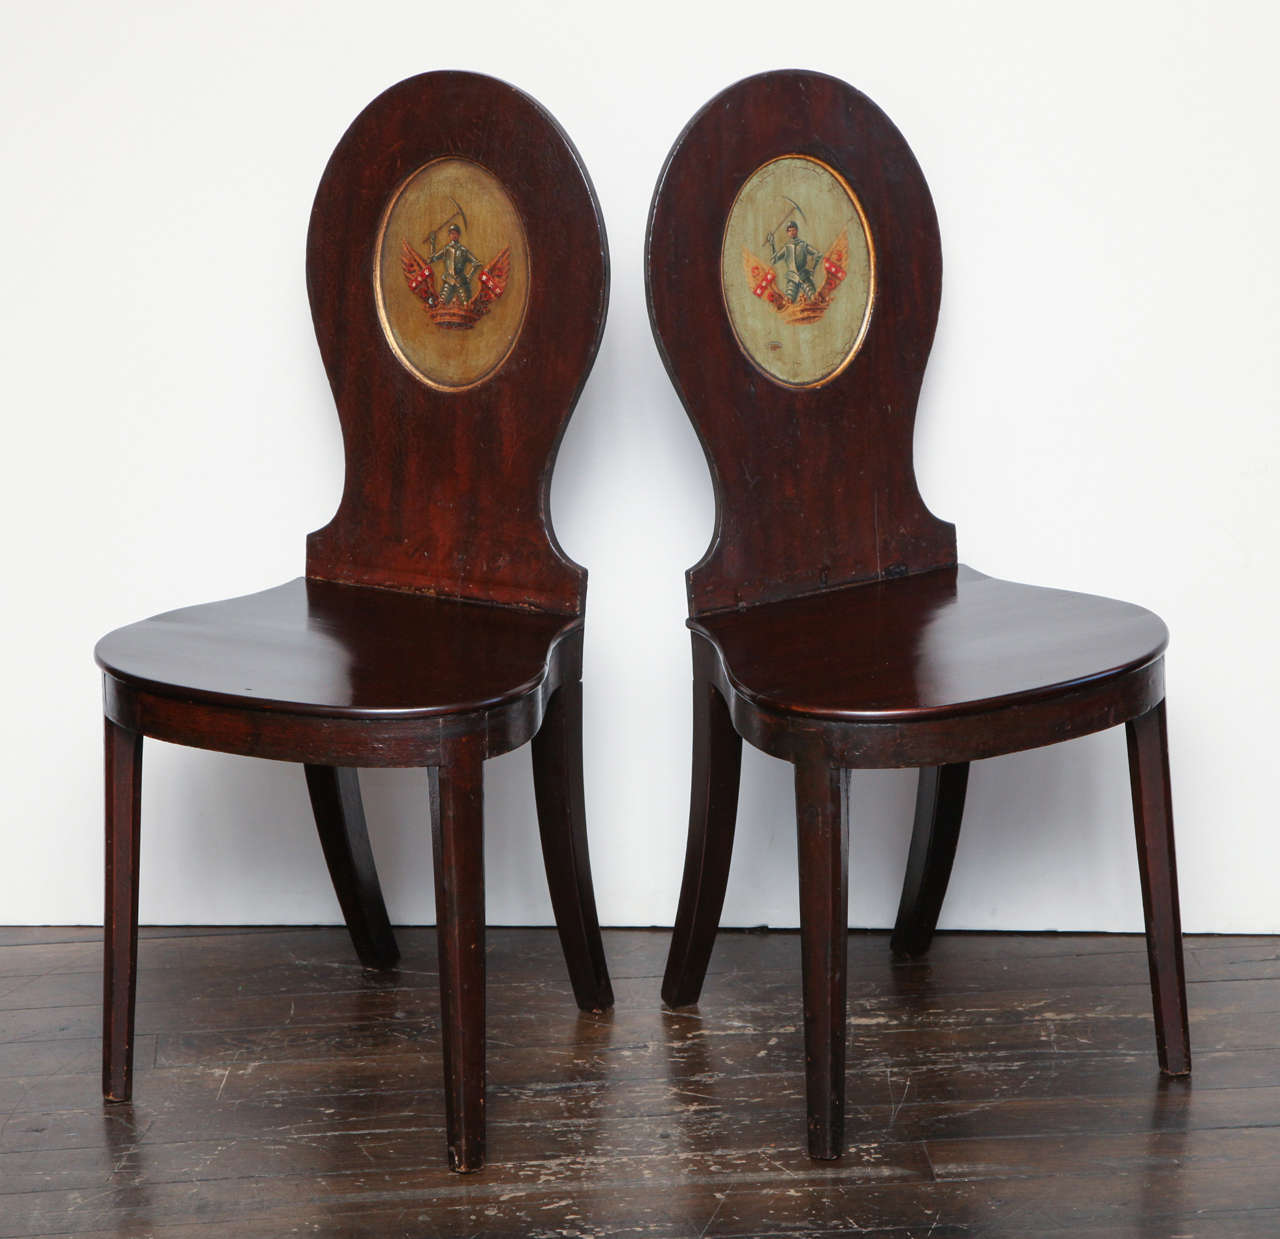 Pair of Early 19th Century, English Regency, Crested Hall Chairs in Mahogany